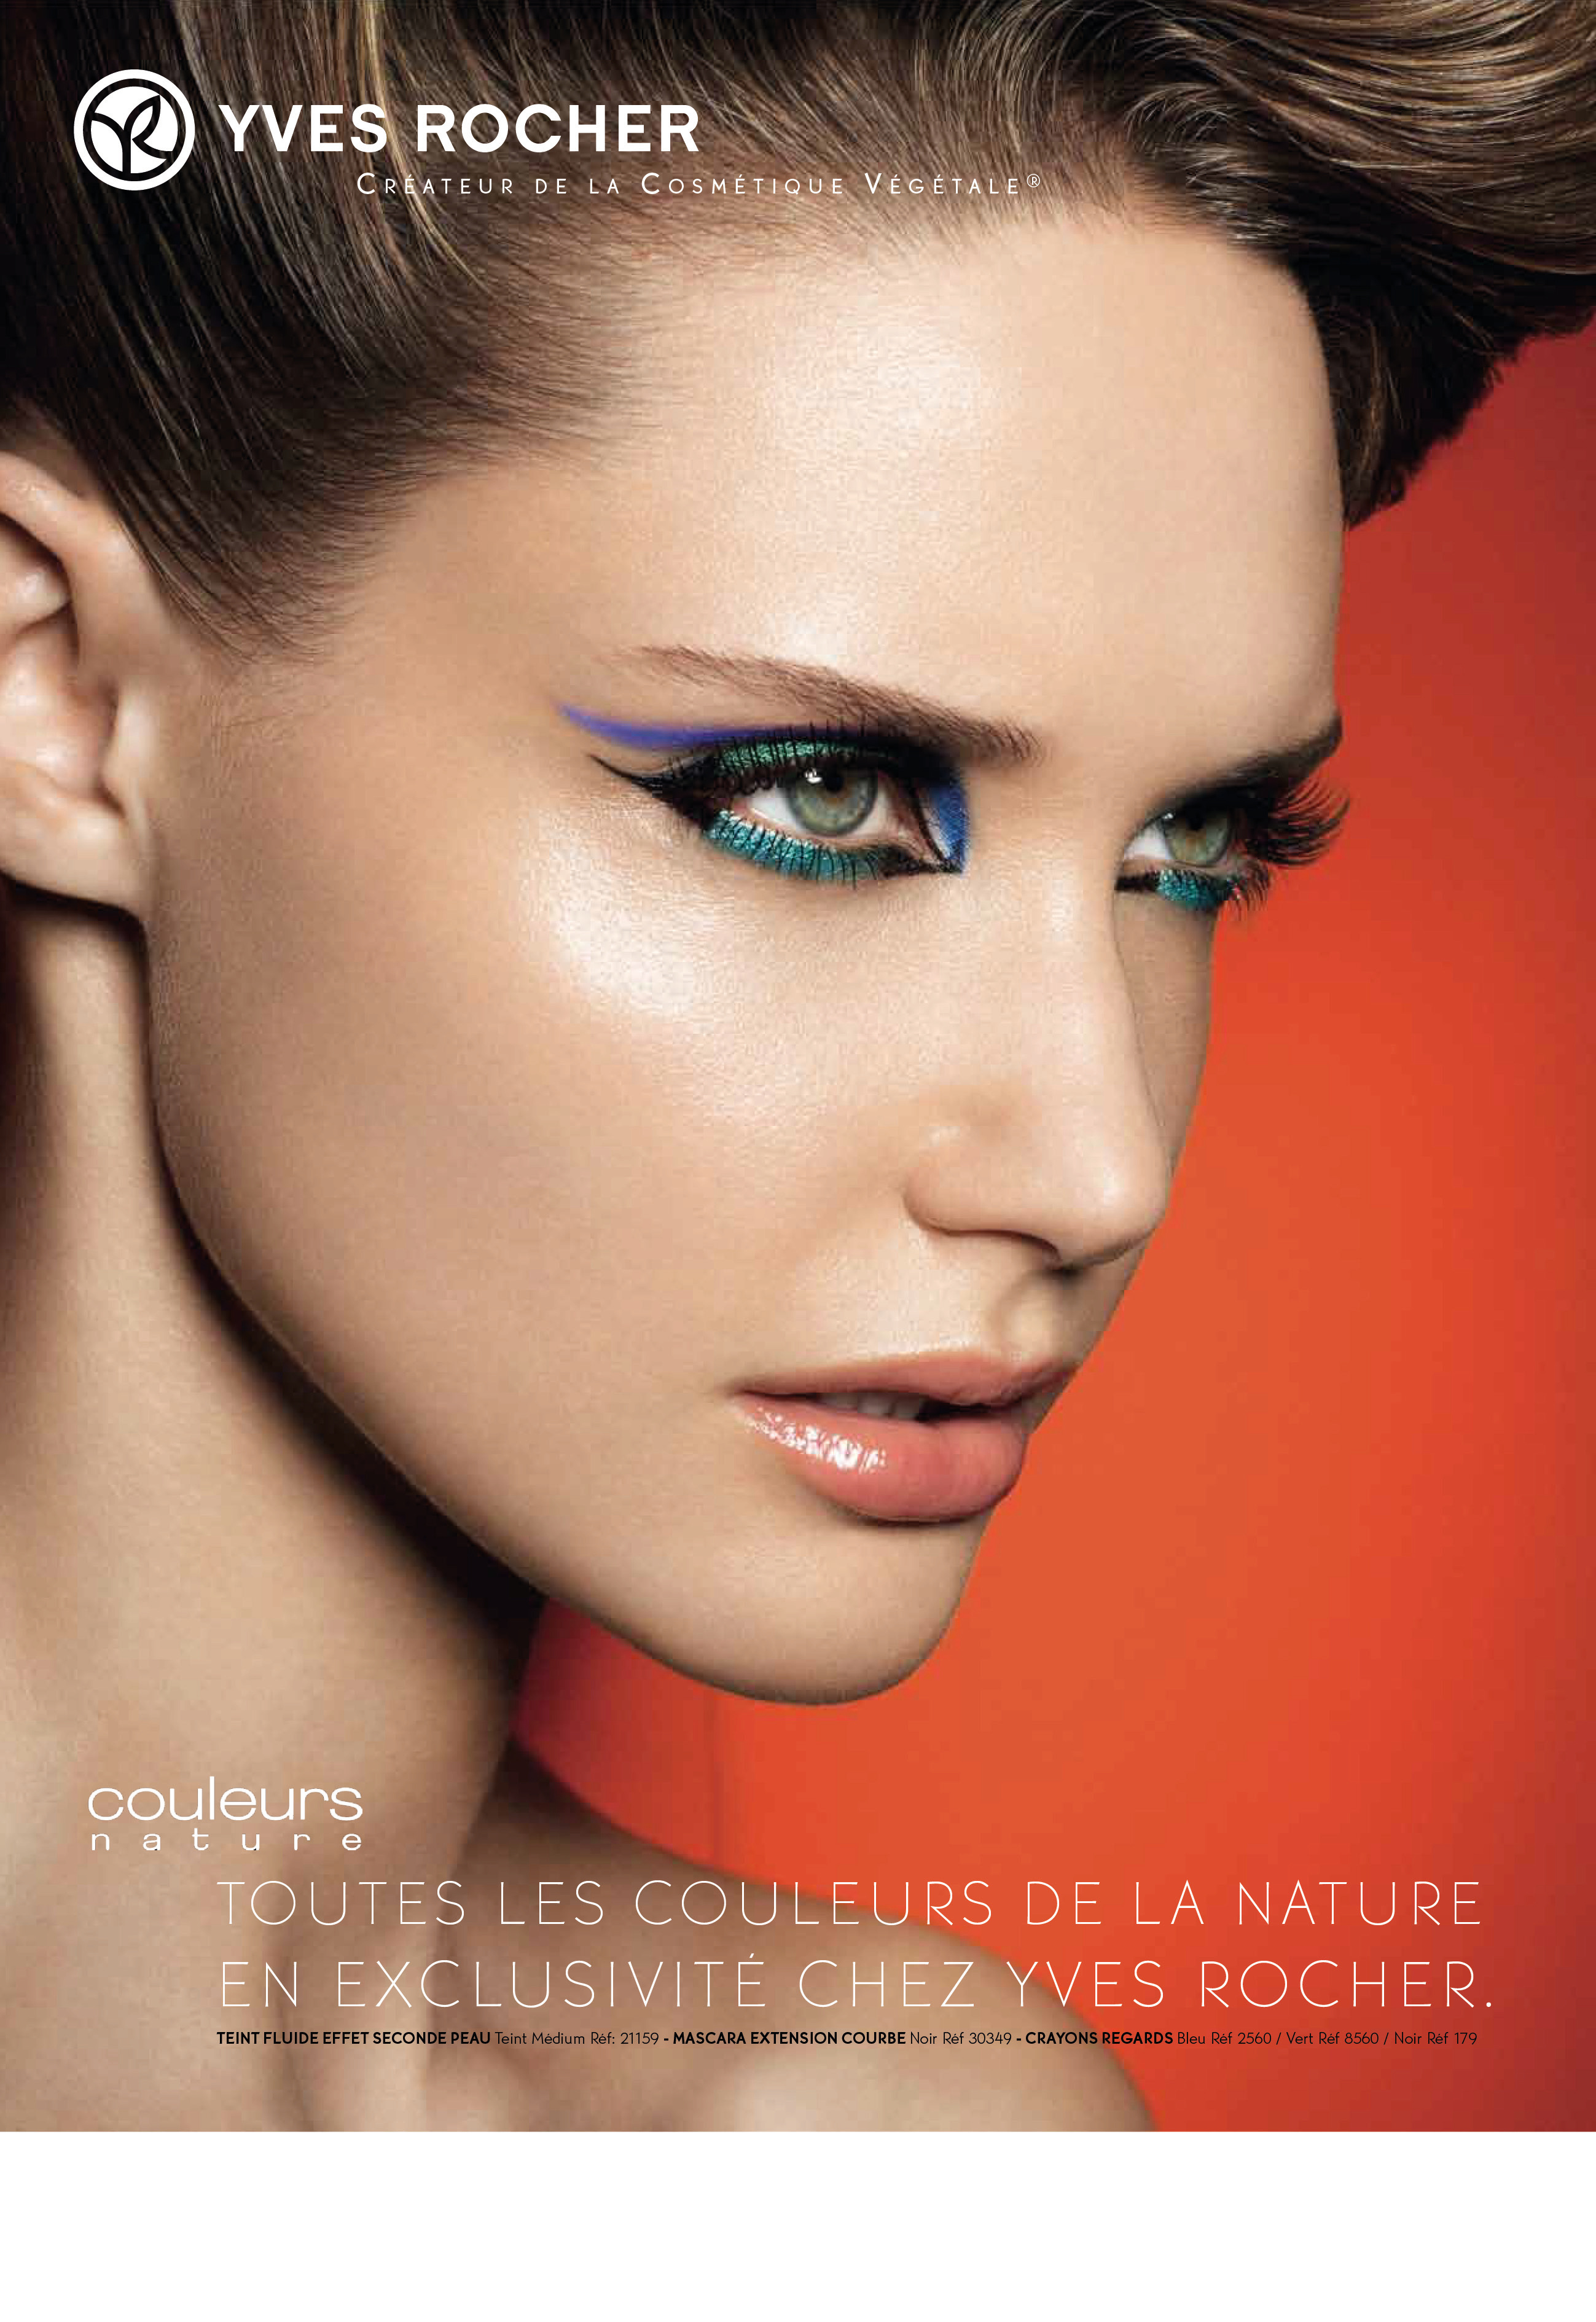 Couleurs Nature // Yves Rocher